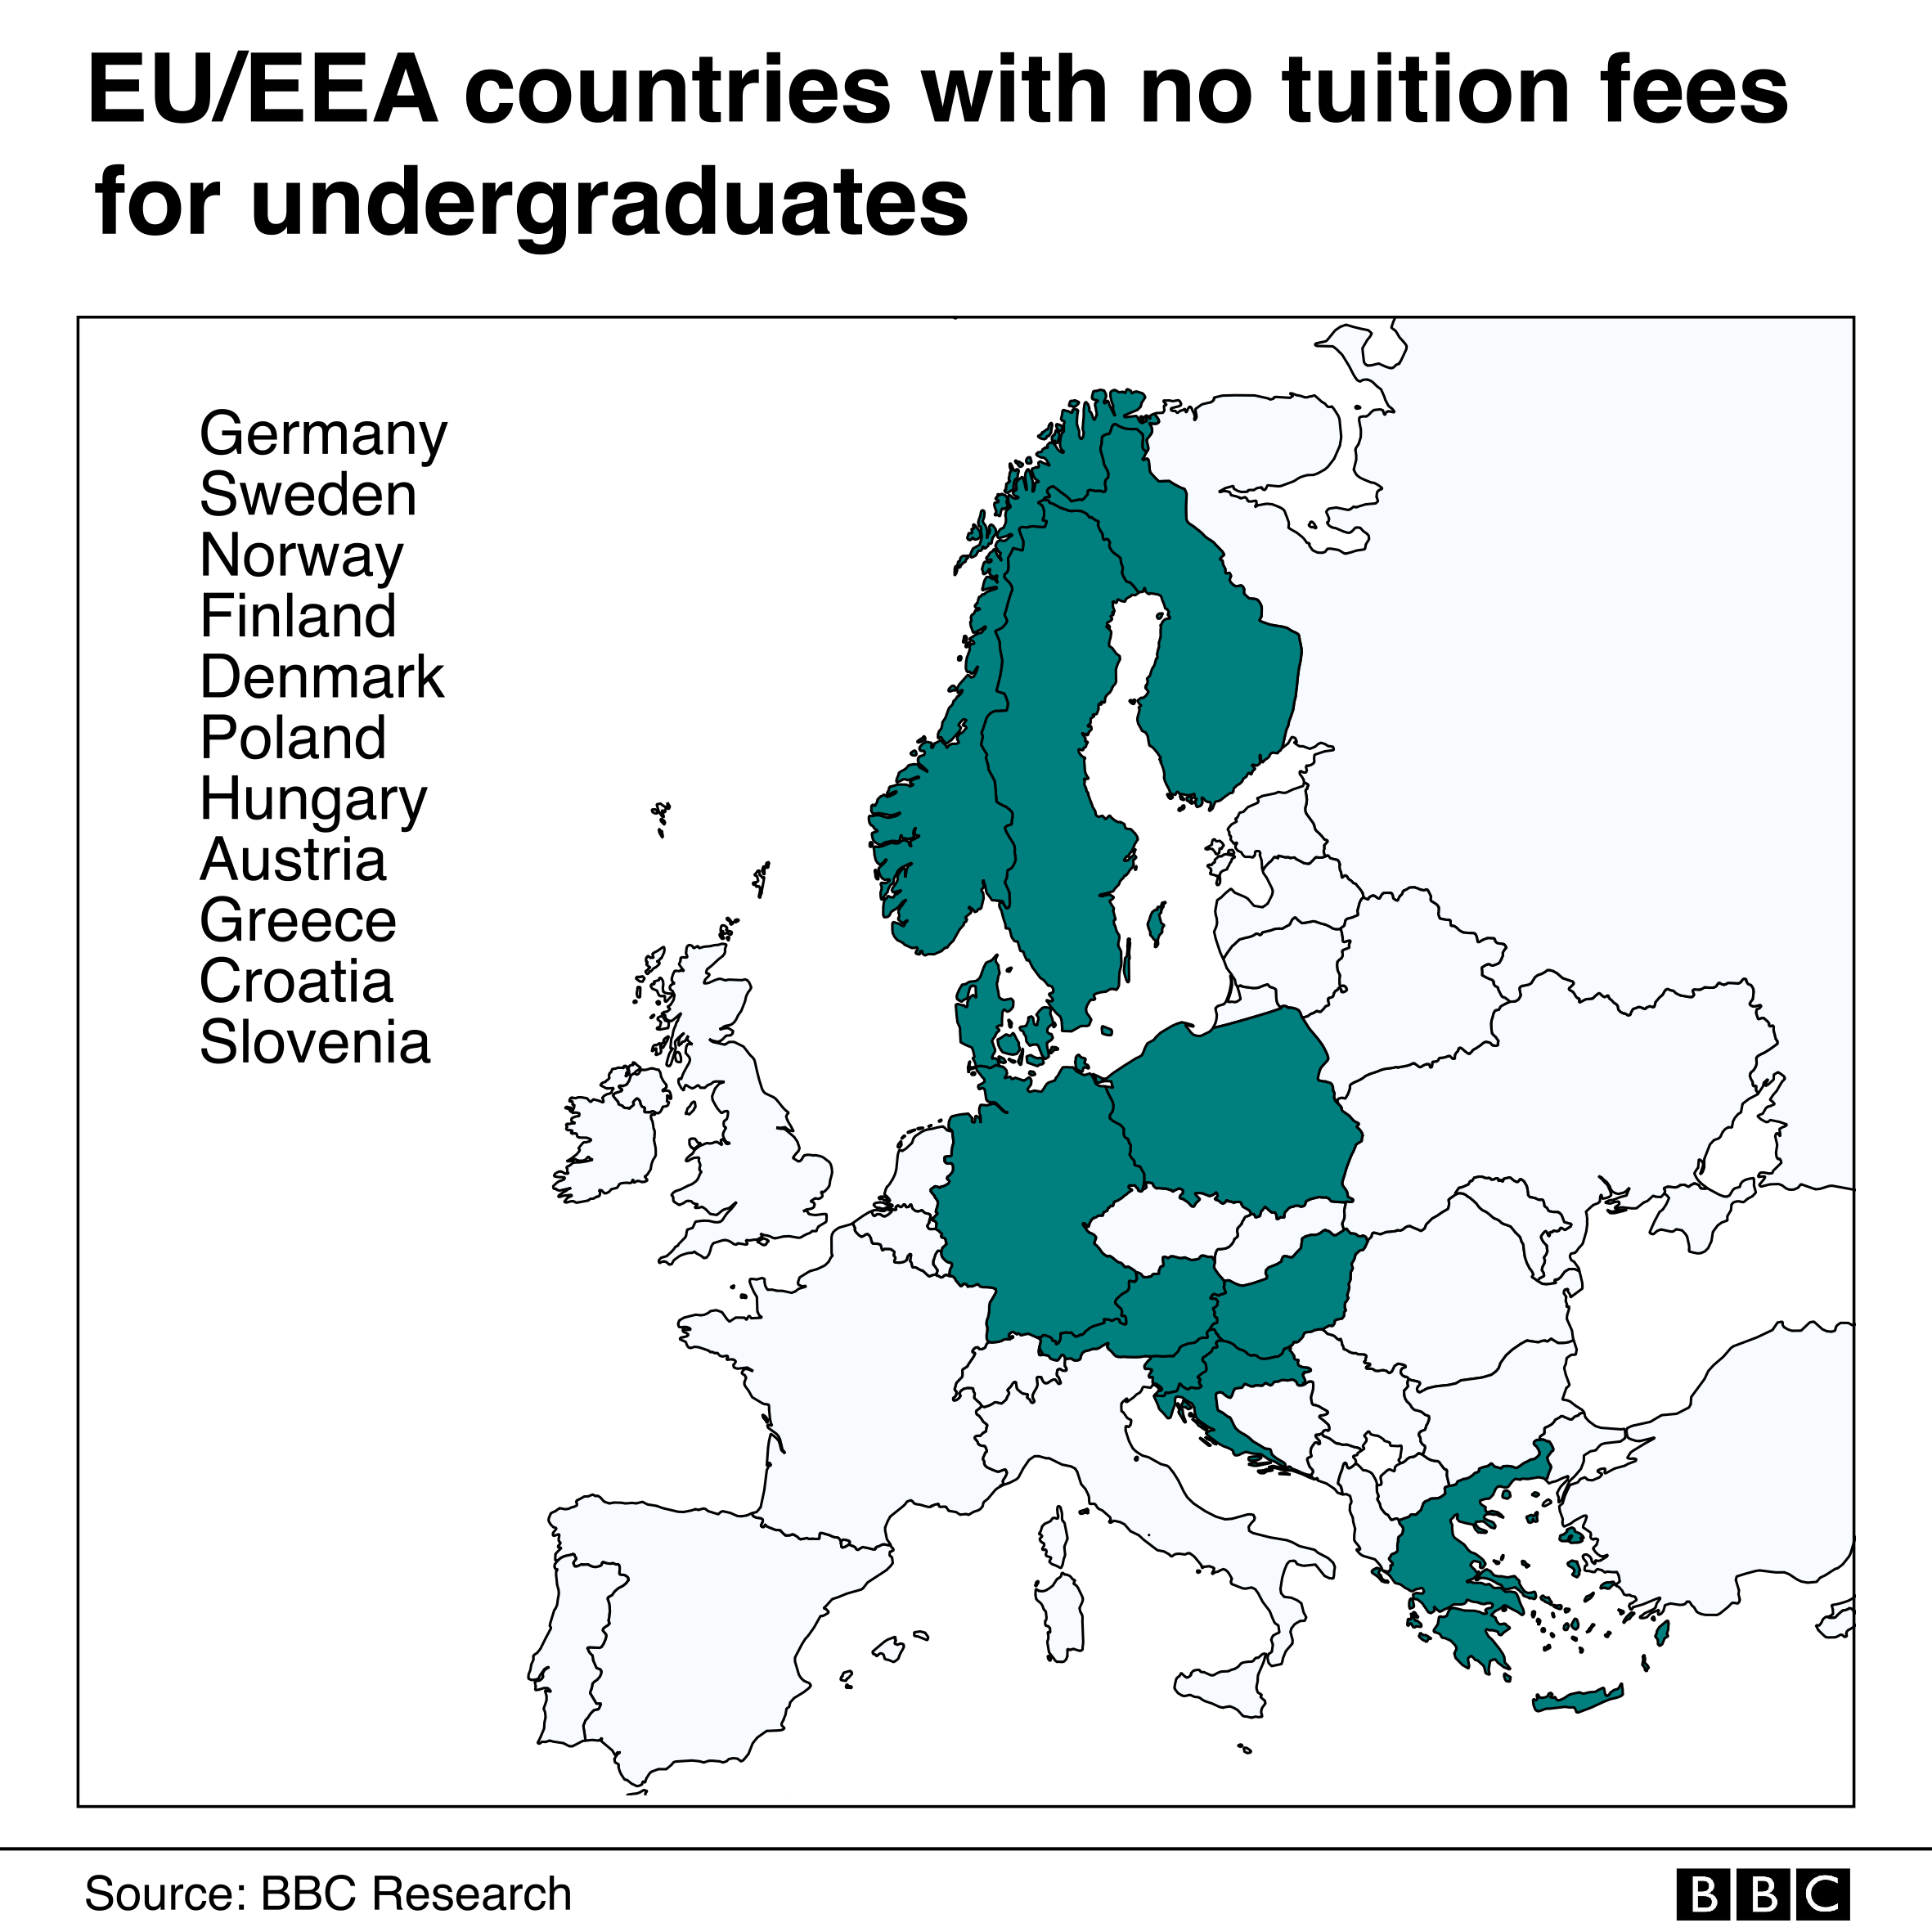 A map of Europe showing with 11 countries where undergraduate students do not pay any tuition fees